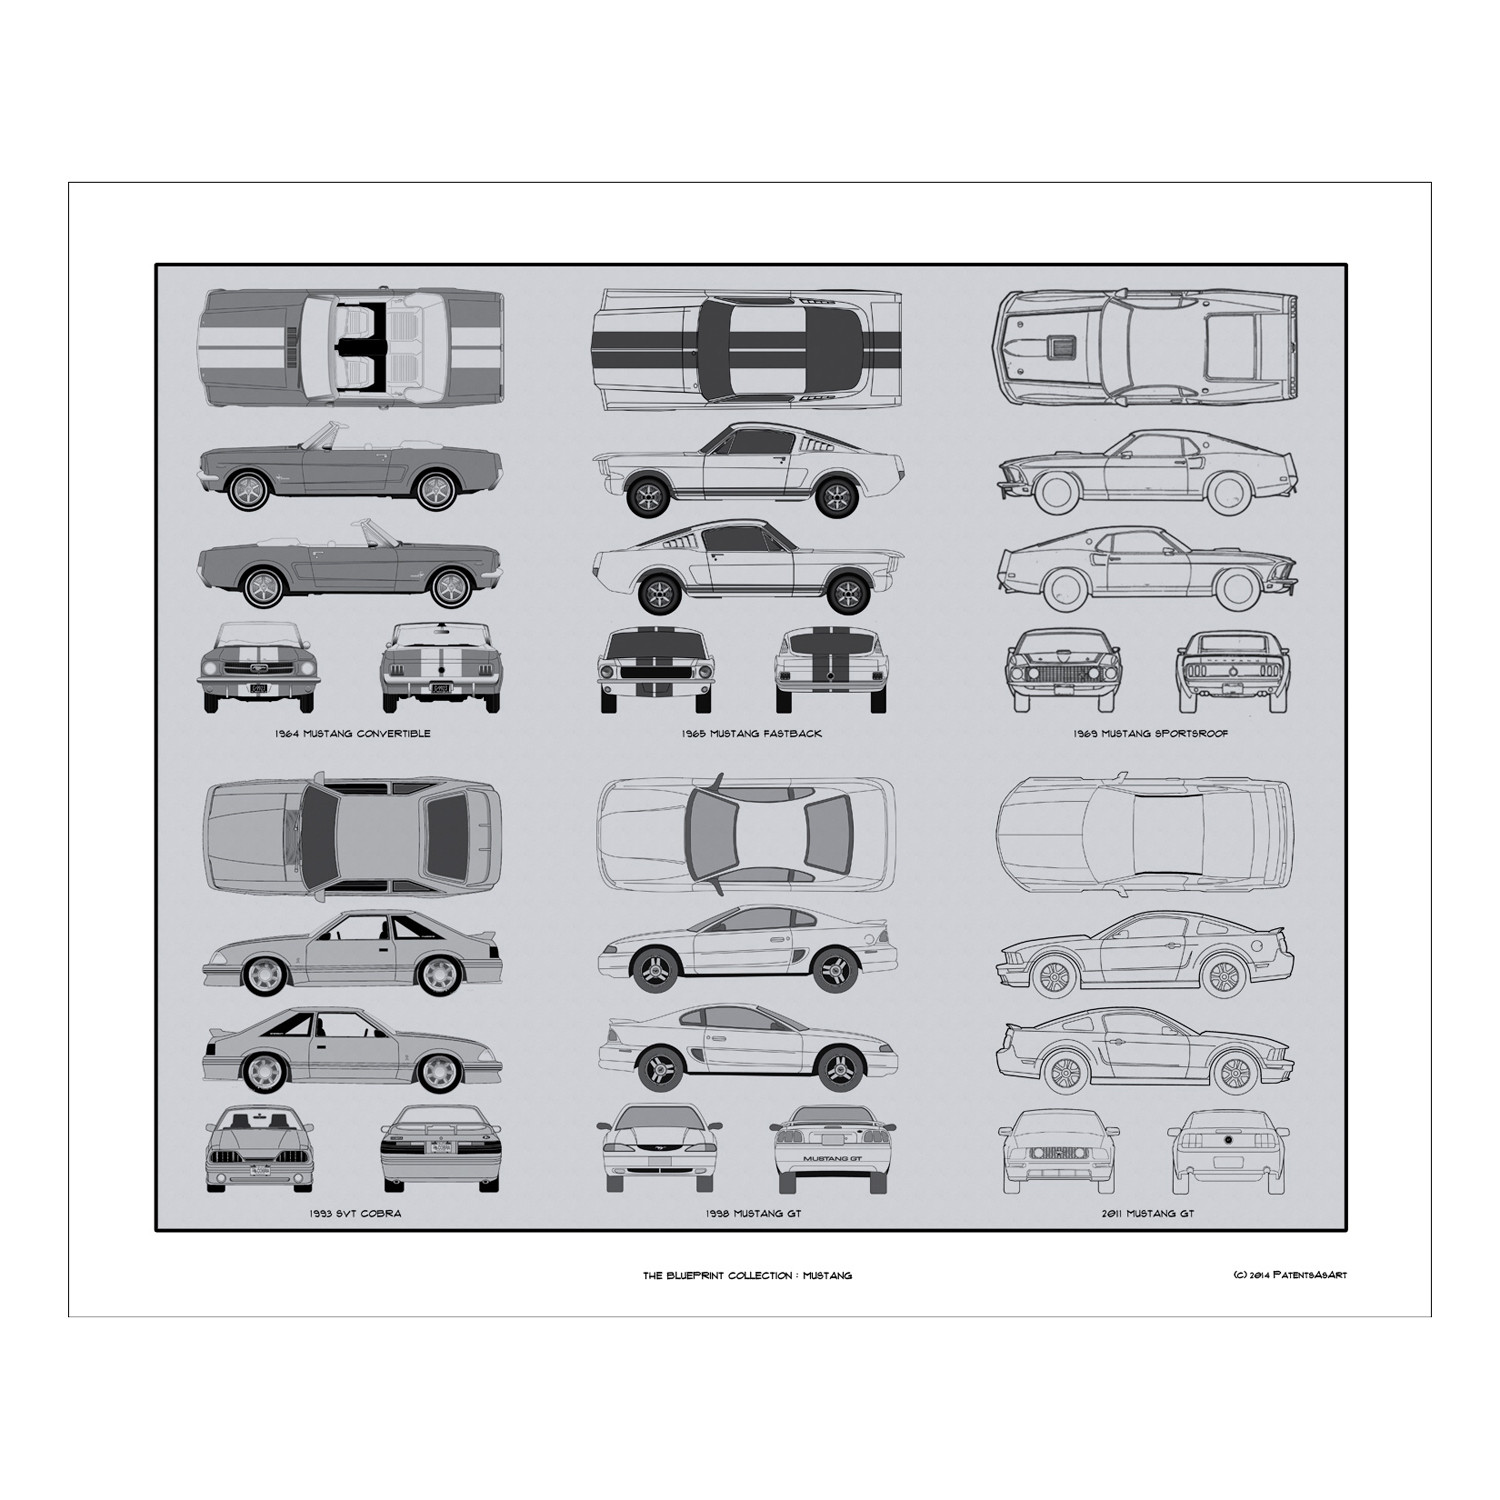 hight resolution of de95503646879094c517bb0af2287b49 medium ford mustang blueprint collection